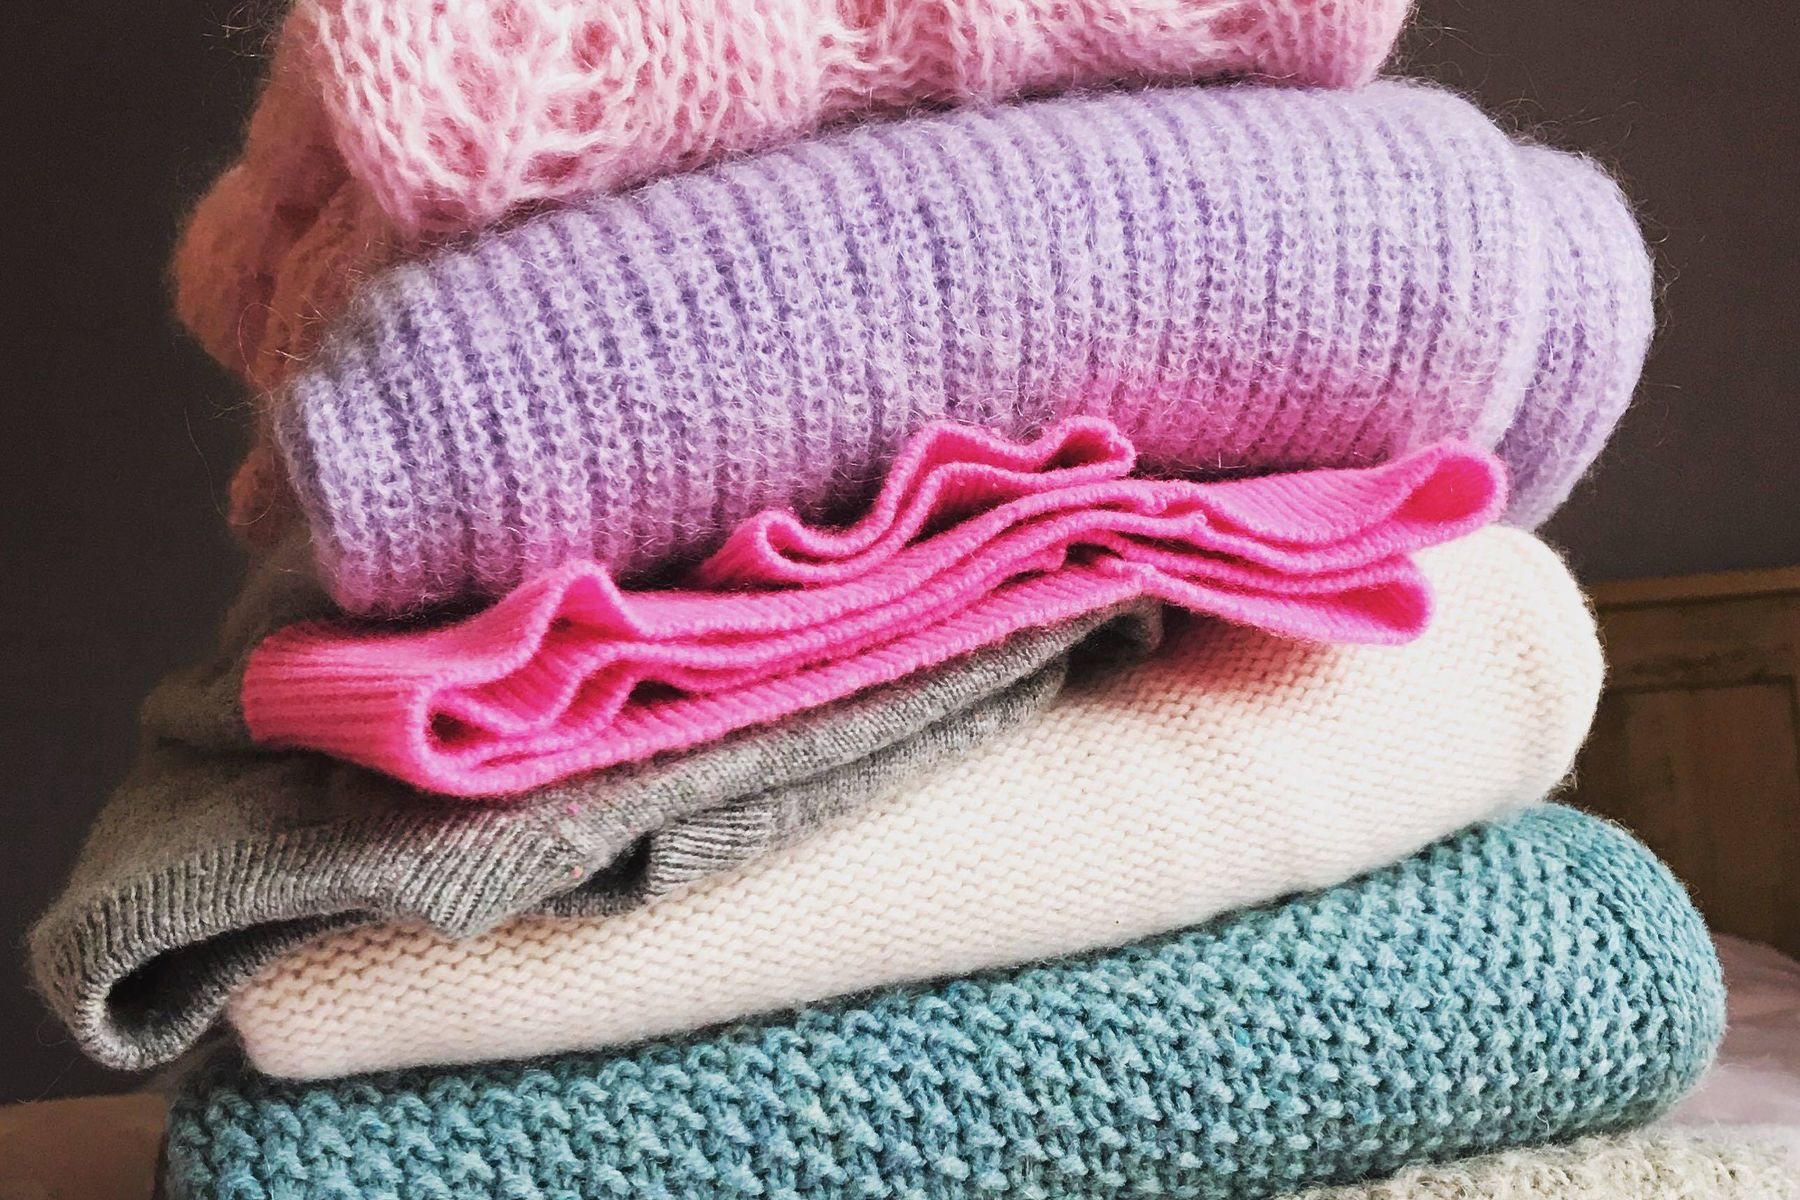 woolen clothes in pastel colors folded and stacked